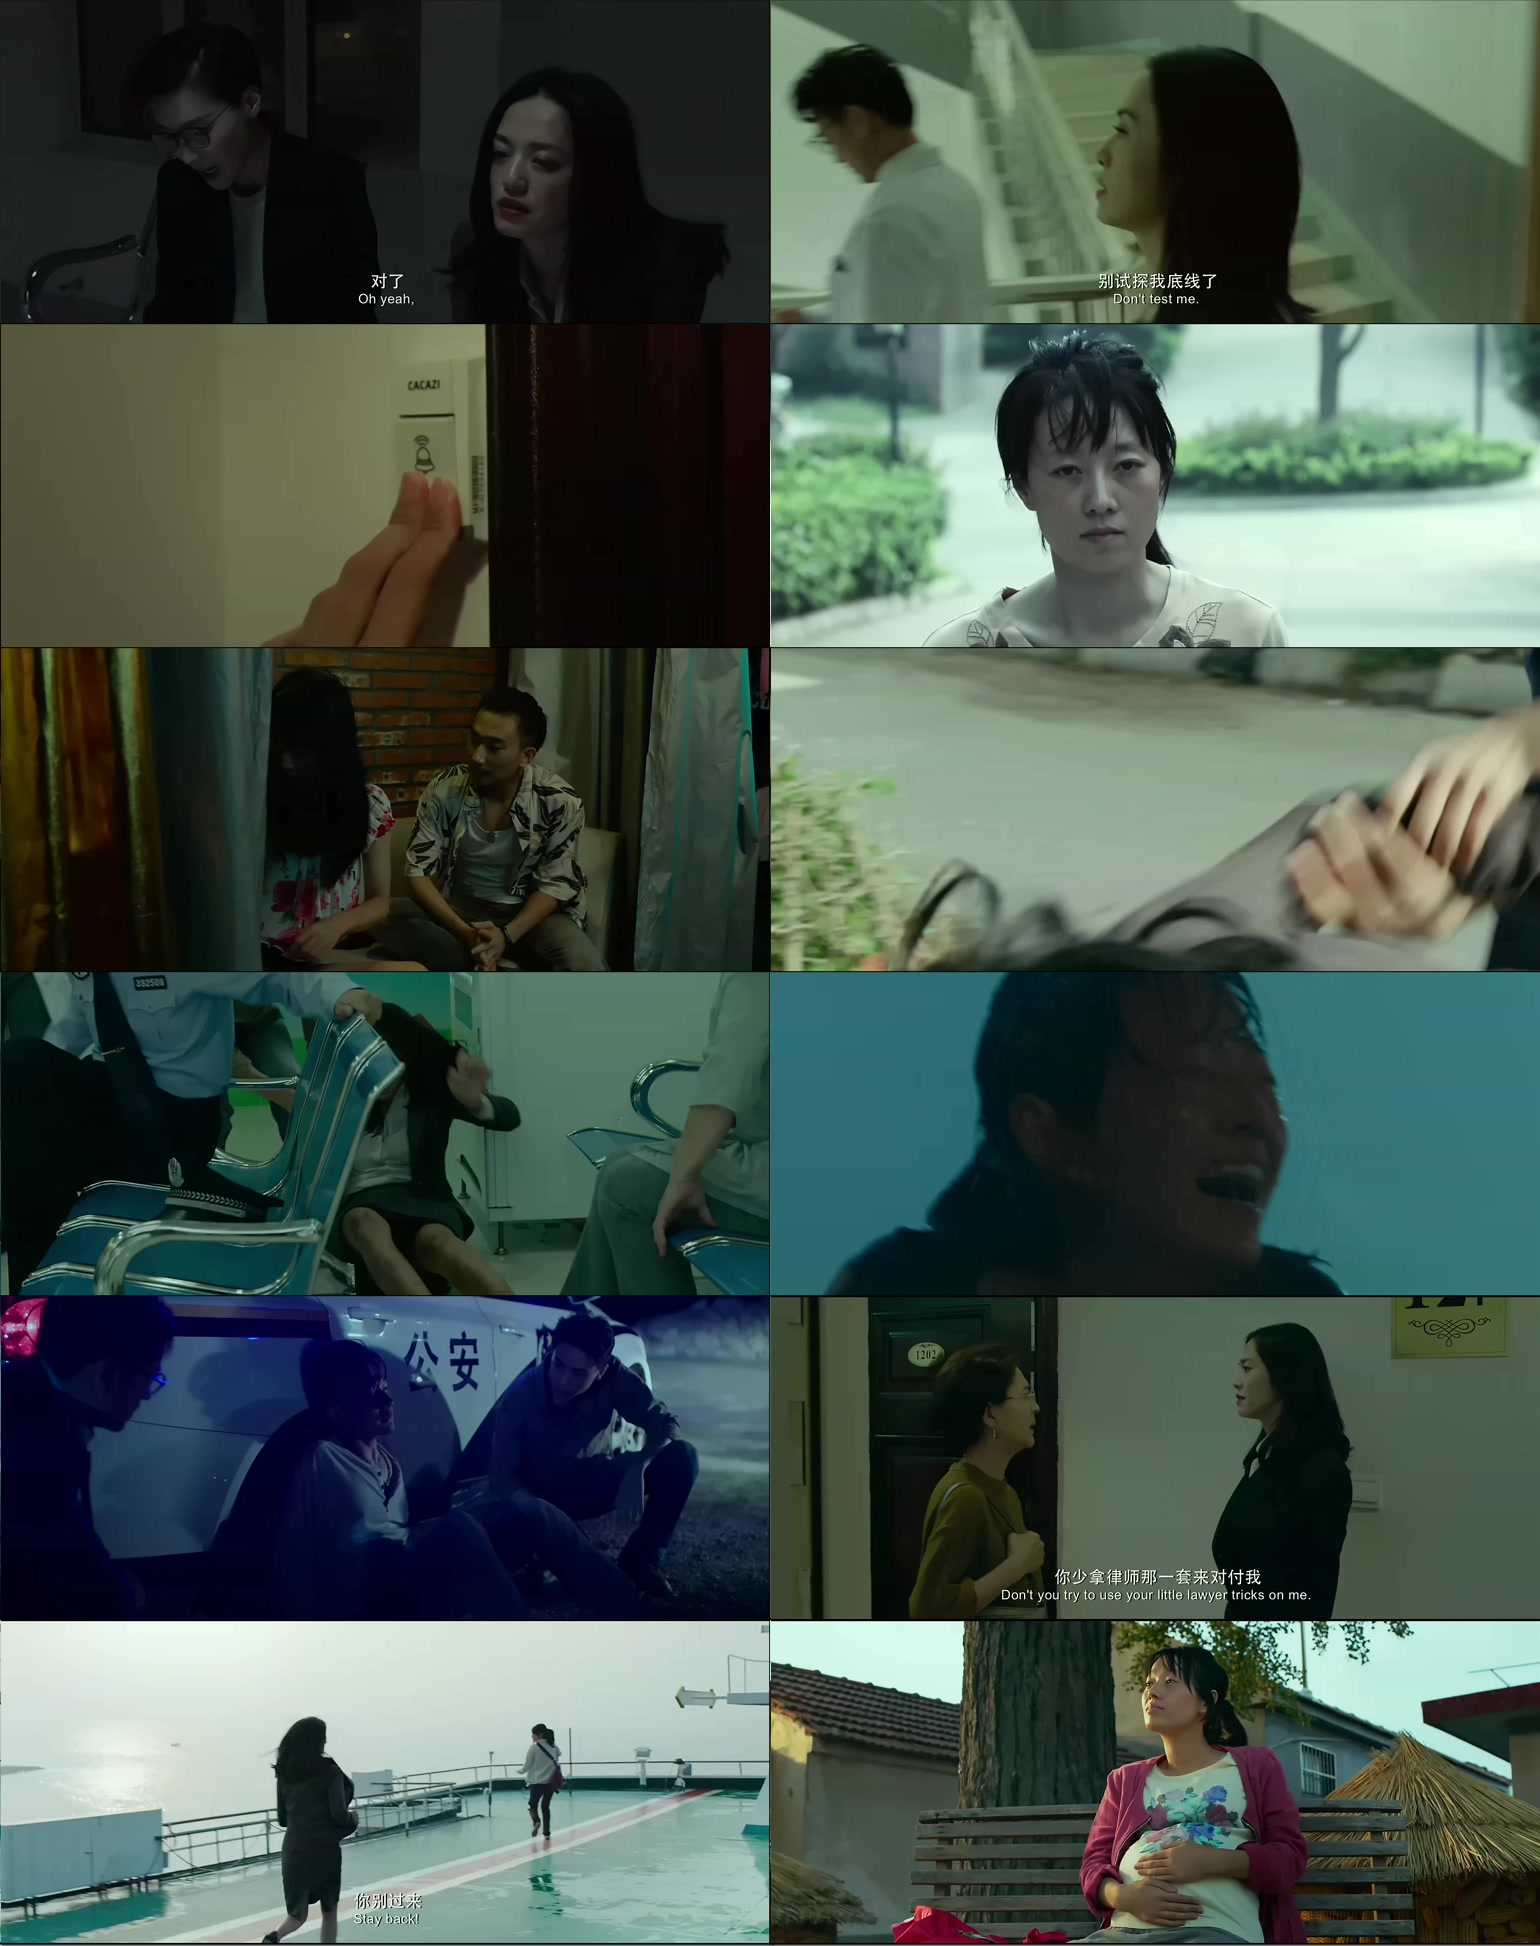 Lost.Found.2018.1080p.WEB-DL.mkv